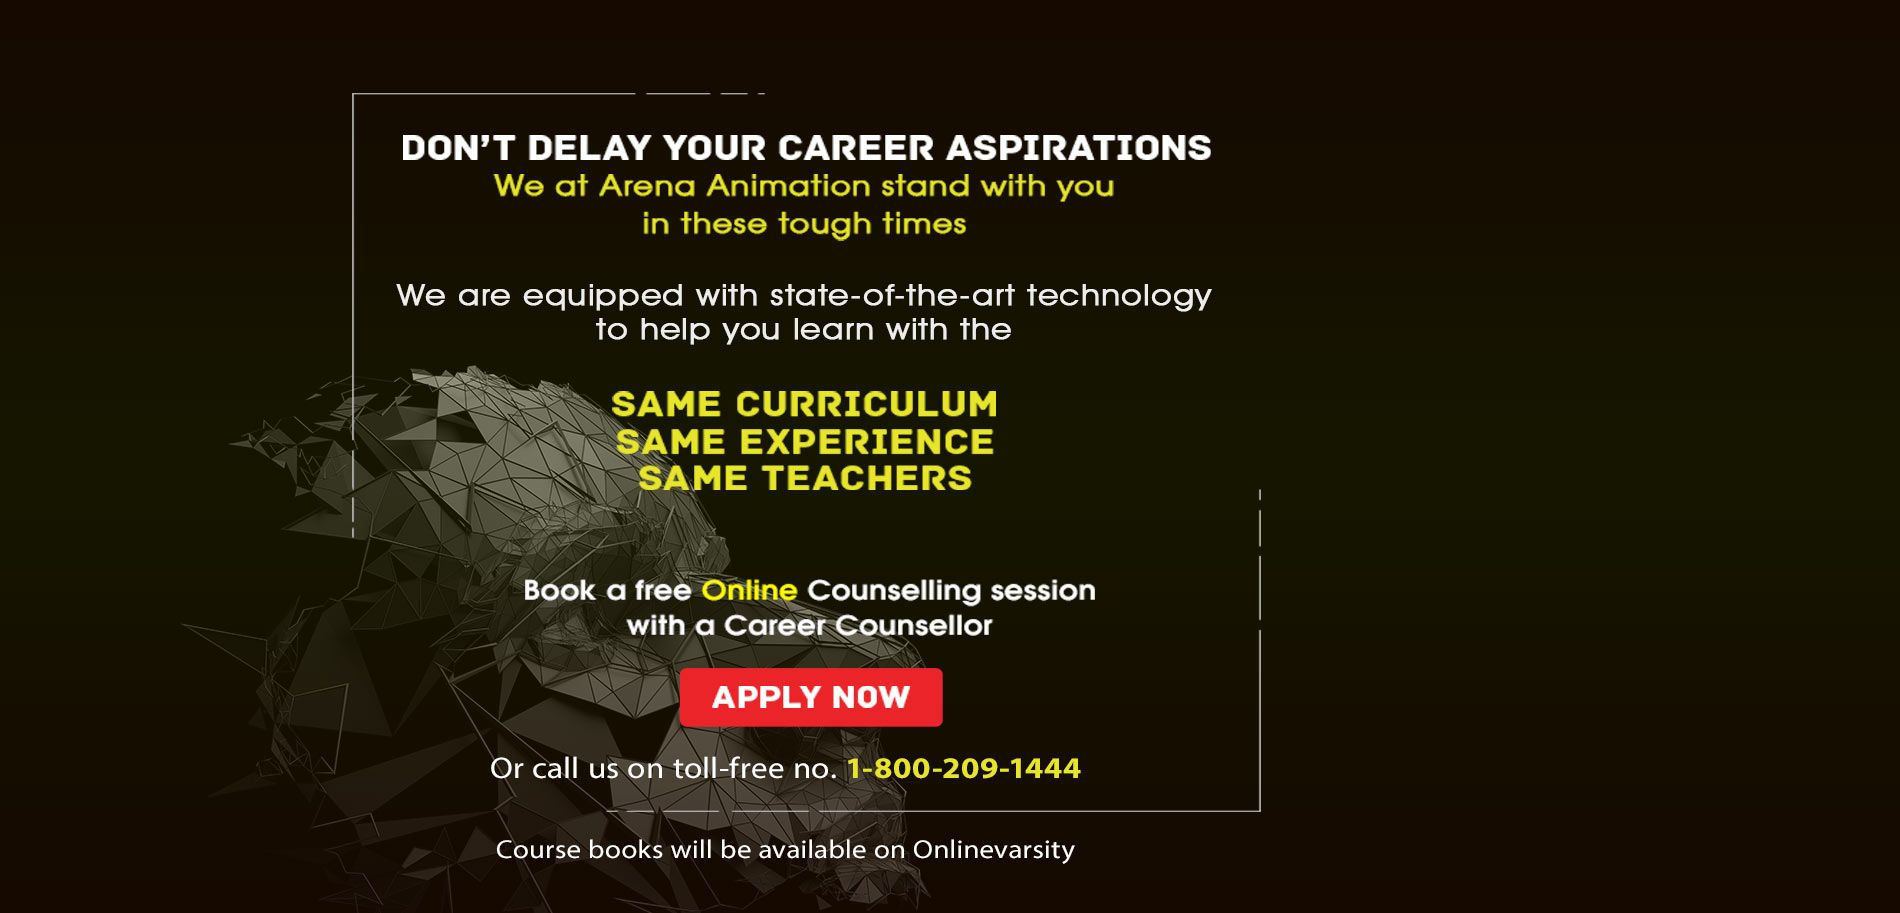 Arena animation career courses in media entertainment